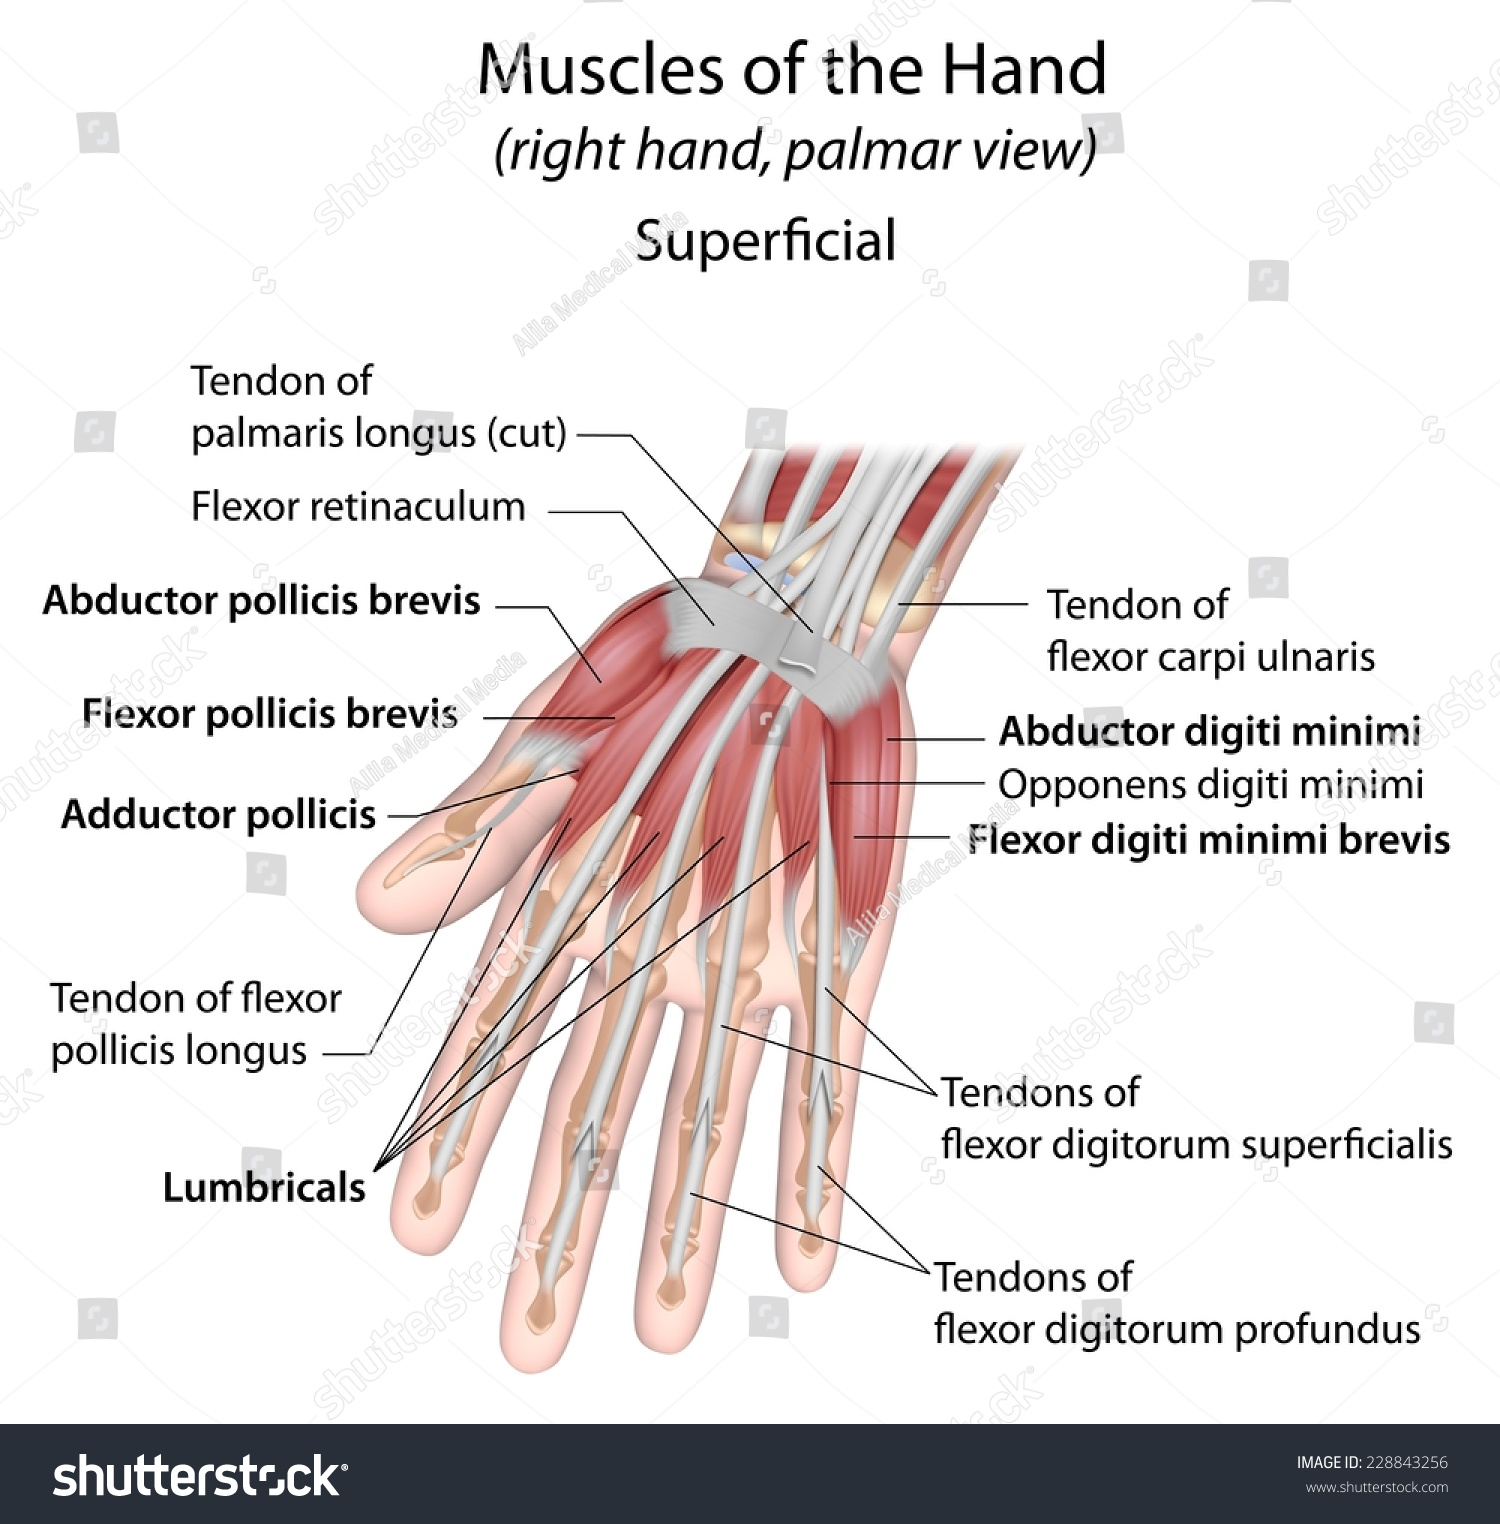 Hand Muscles Palmar Aspect Superficial Labeled Stock Illustration